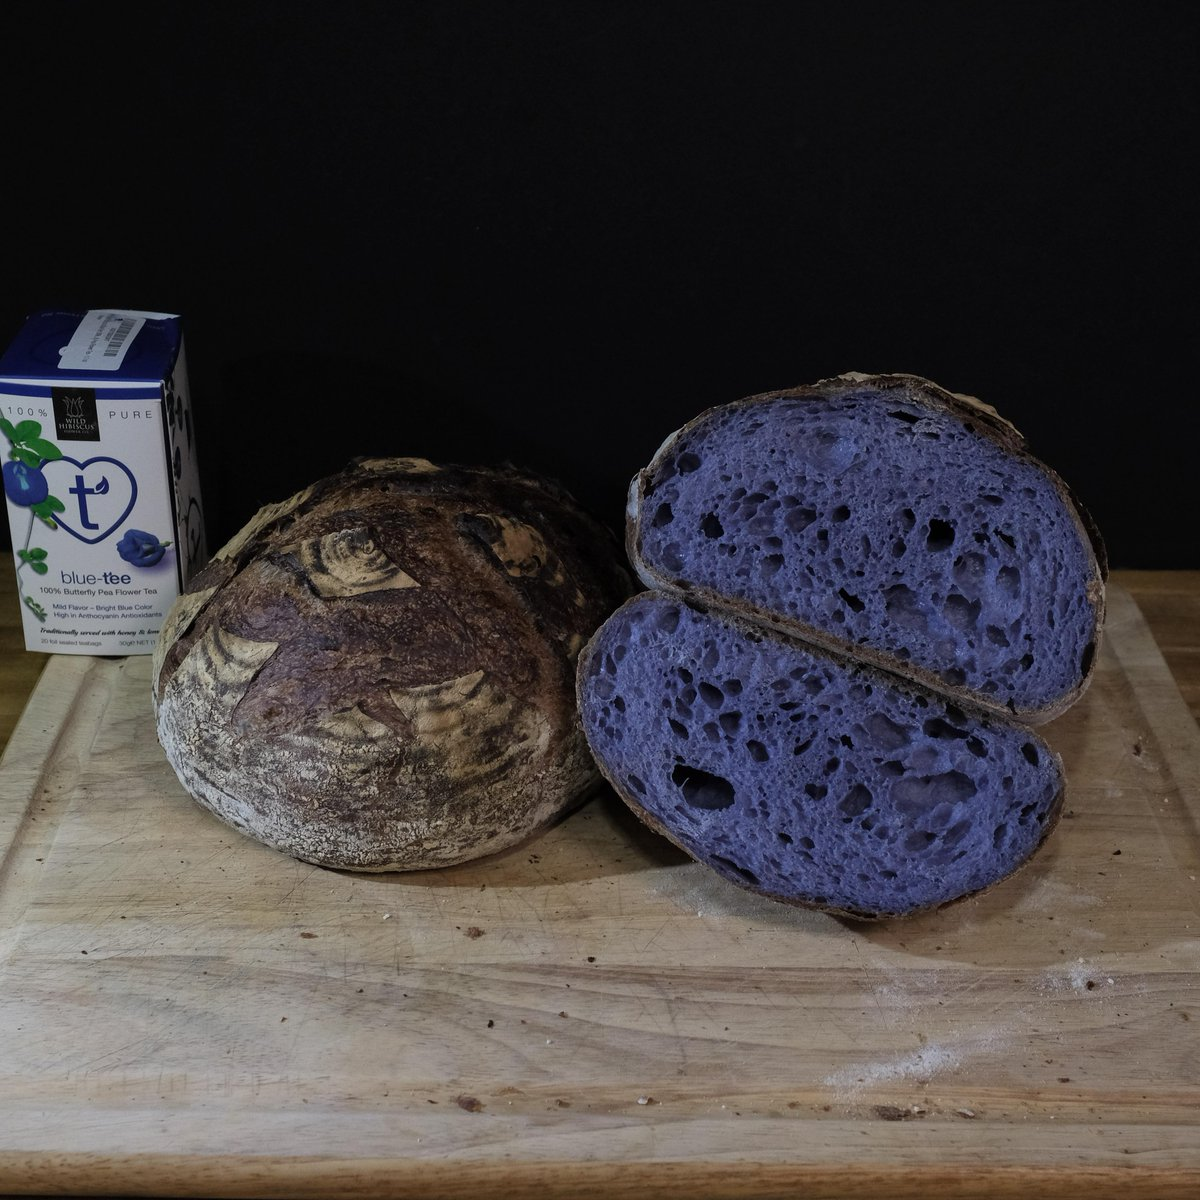 Butterfly Pea Flower Tea Sourdough - No added taste just color. #food #foodporn #yummy #pizza https://t.co/oI3I6kClN1